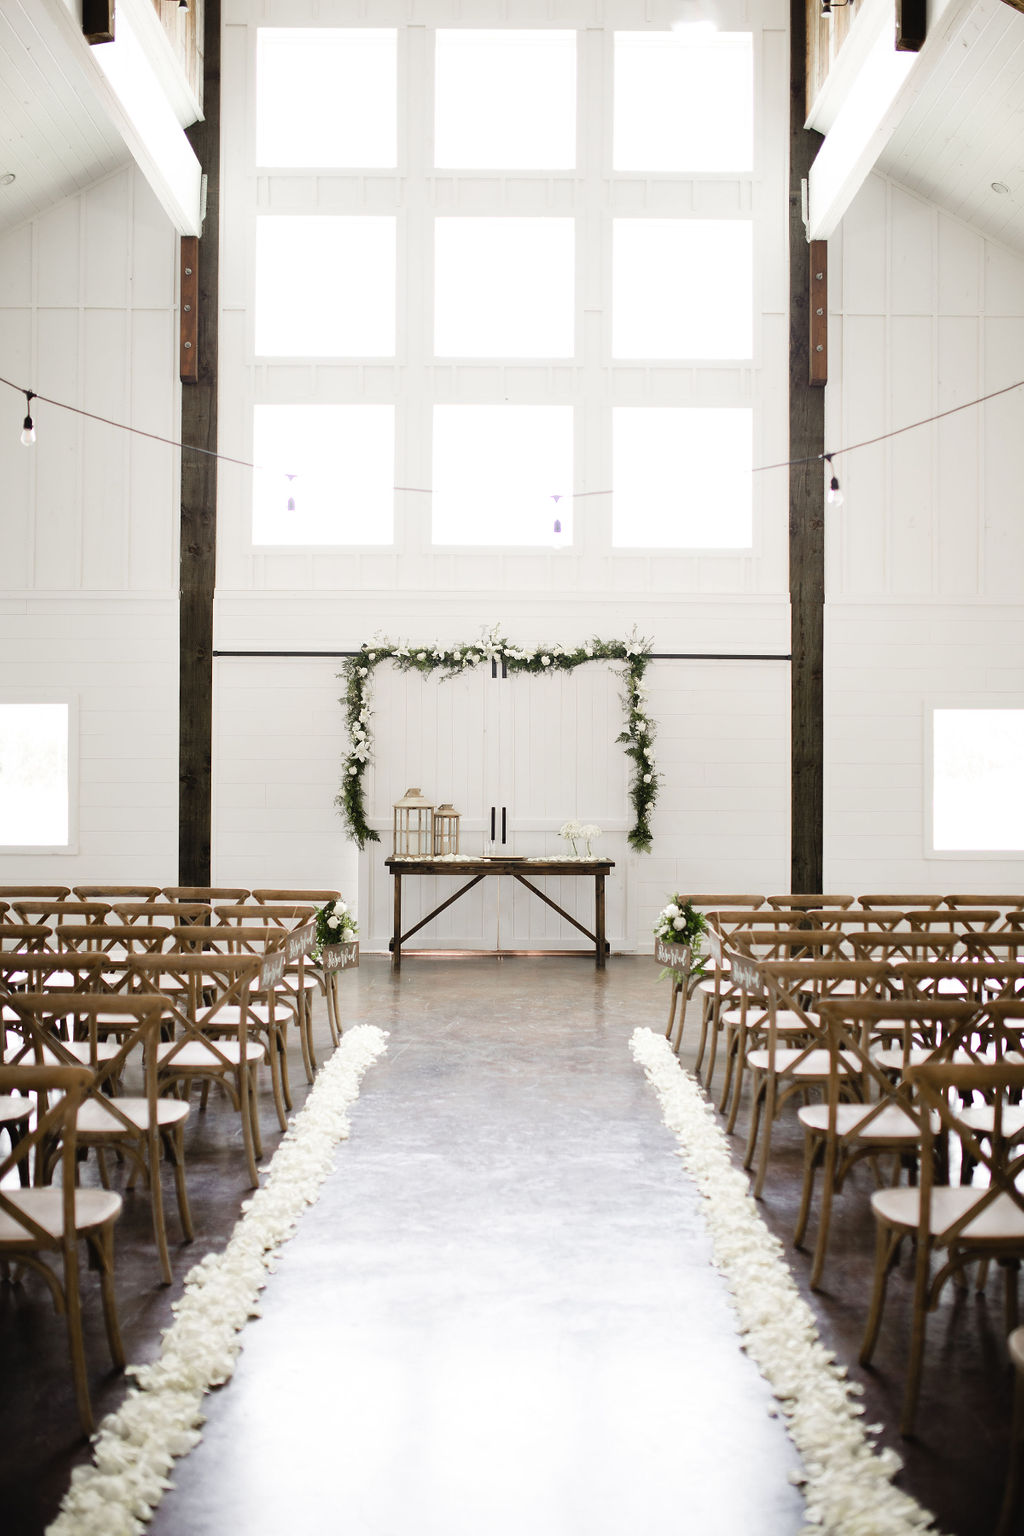 Rustic wedding ceremony decor inspiration